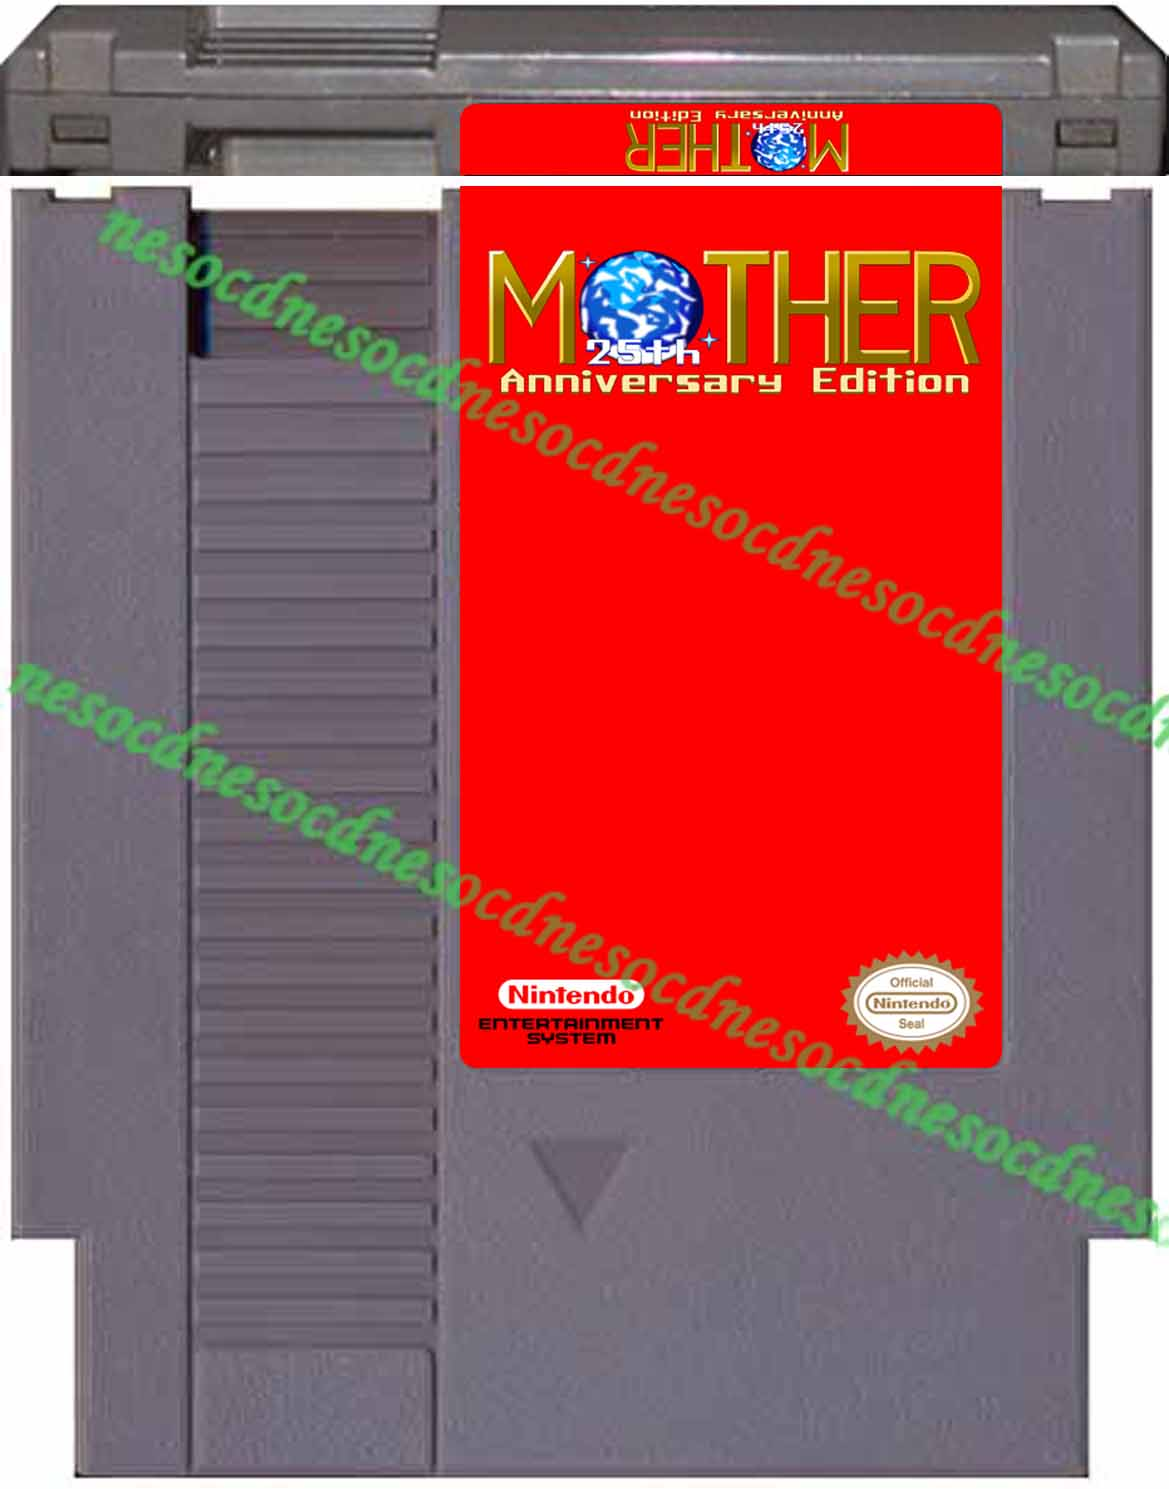 Mother 25th Anniversary Edition